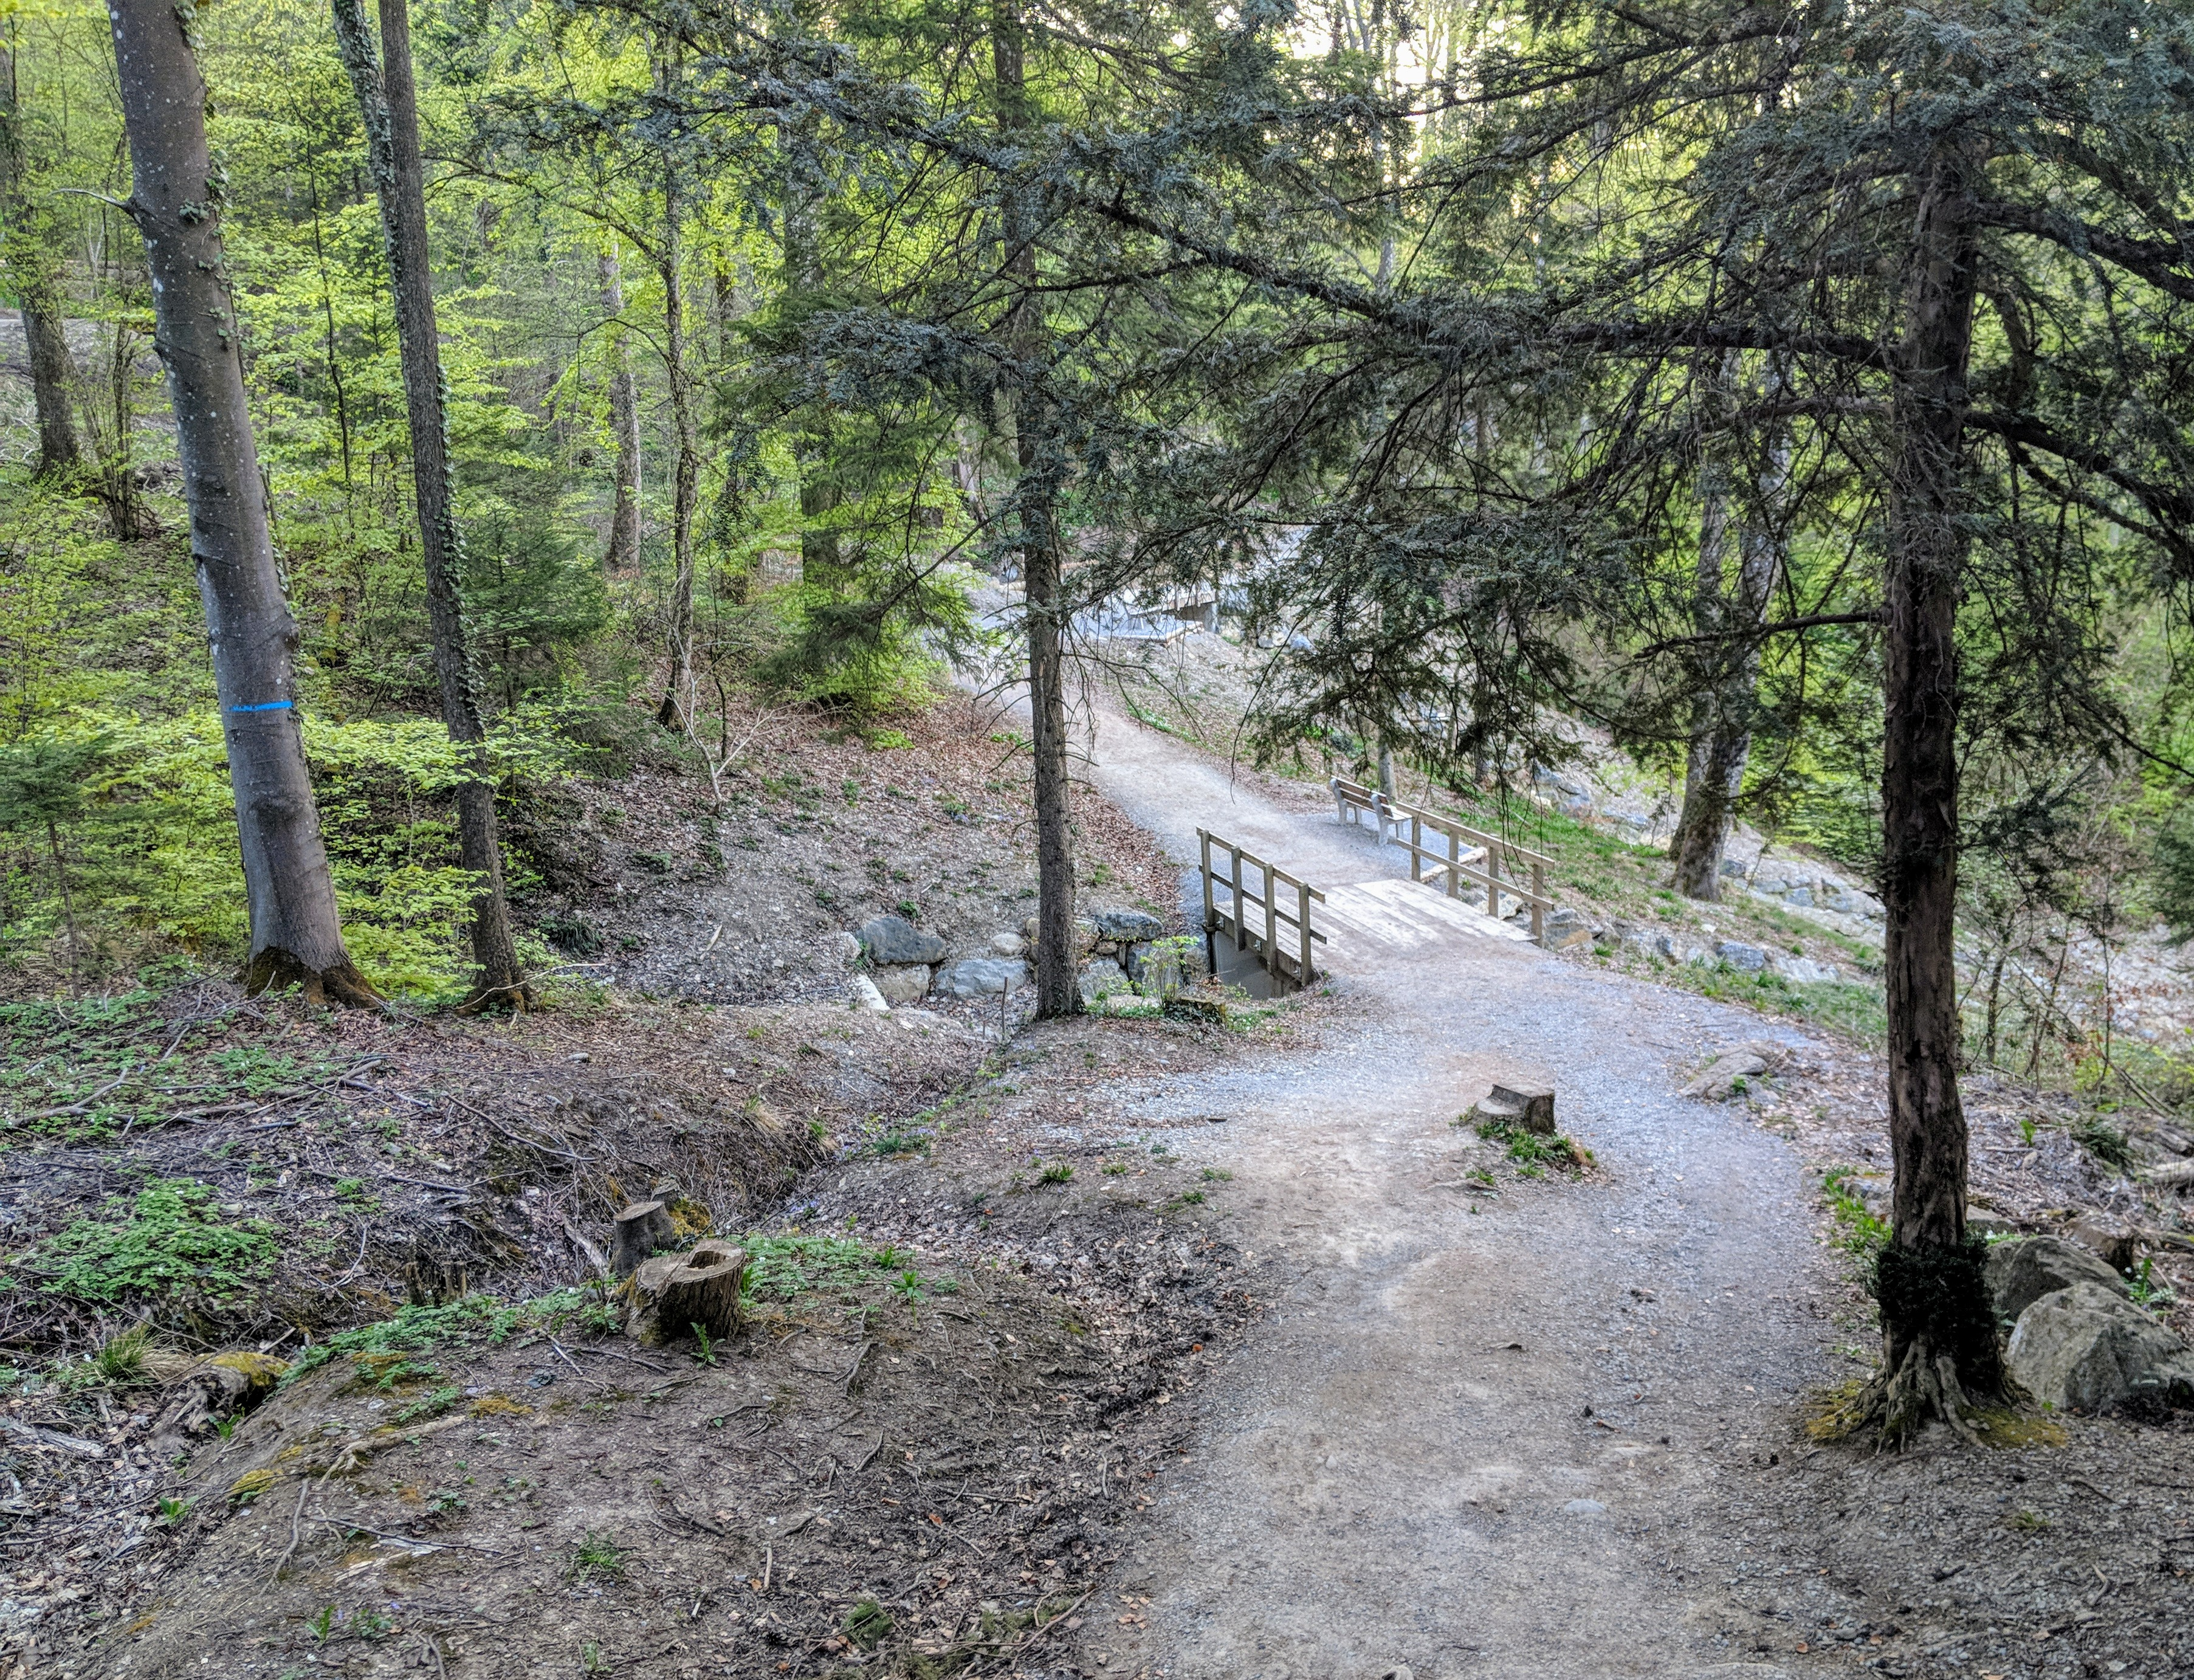 Running route in Zurich - Forrest2